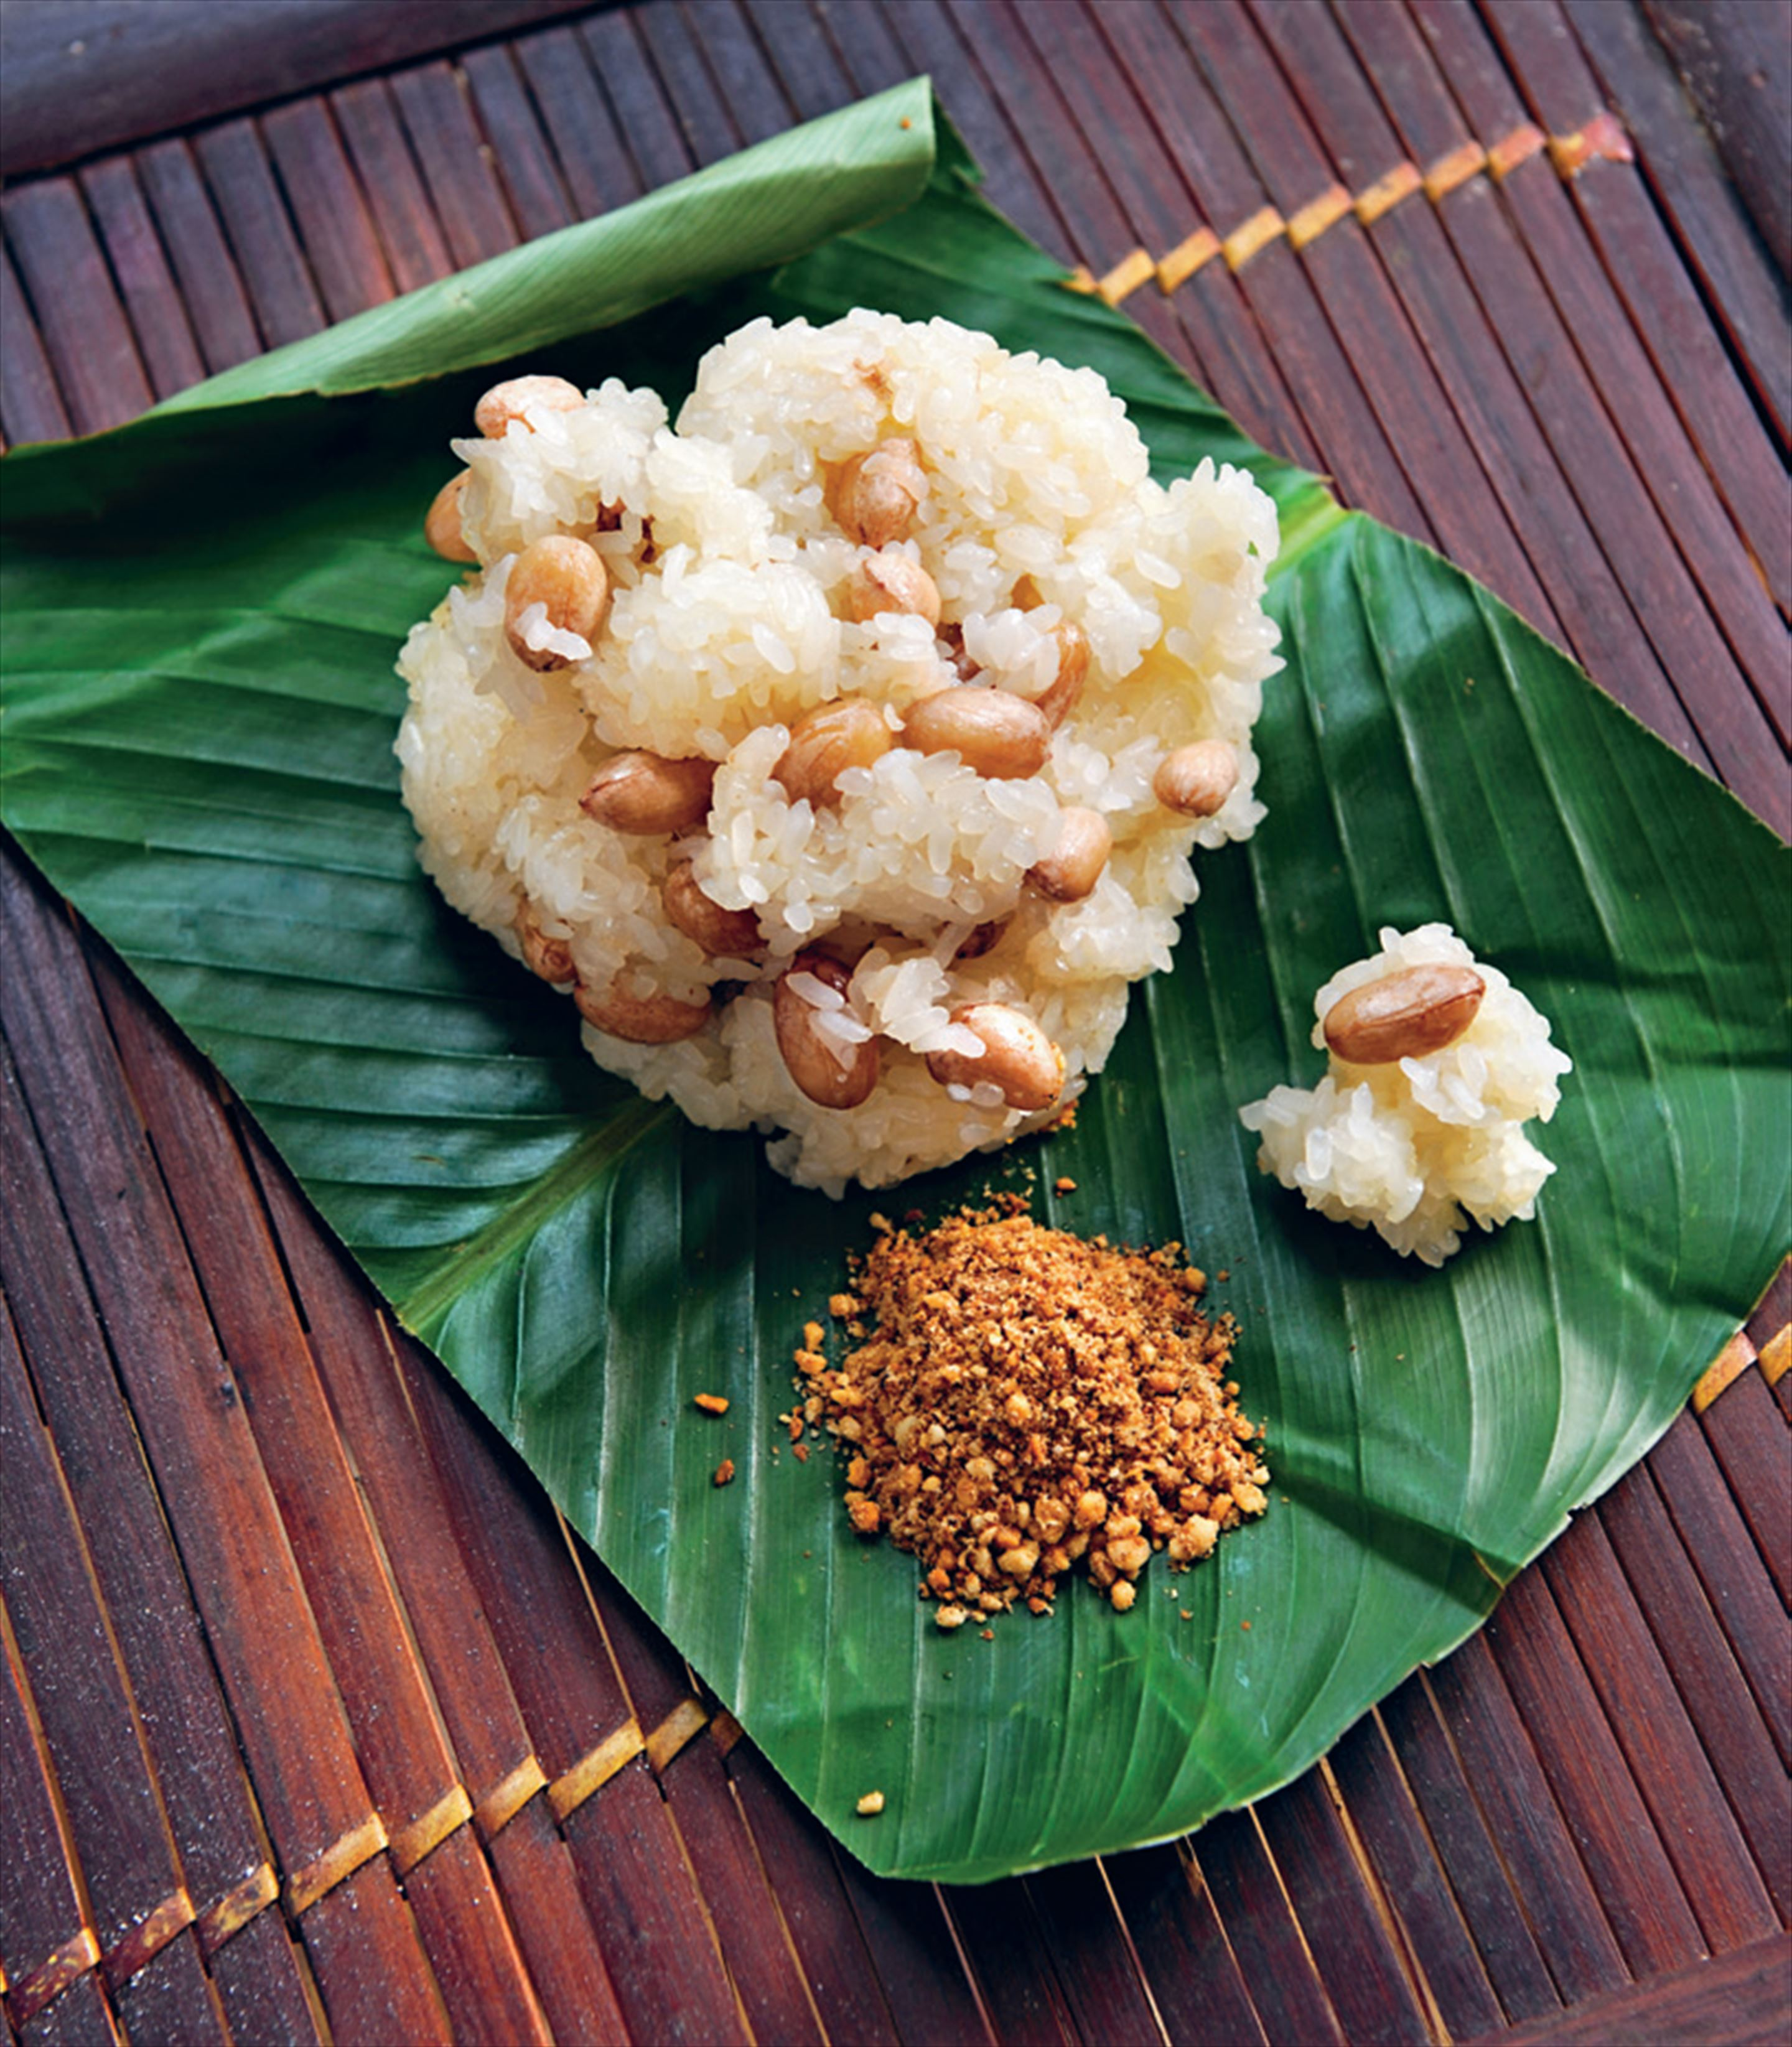 Sticky rice with peanuts